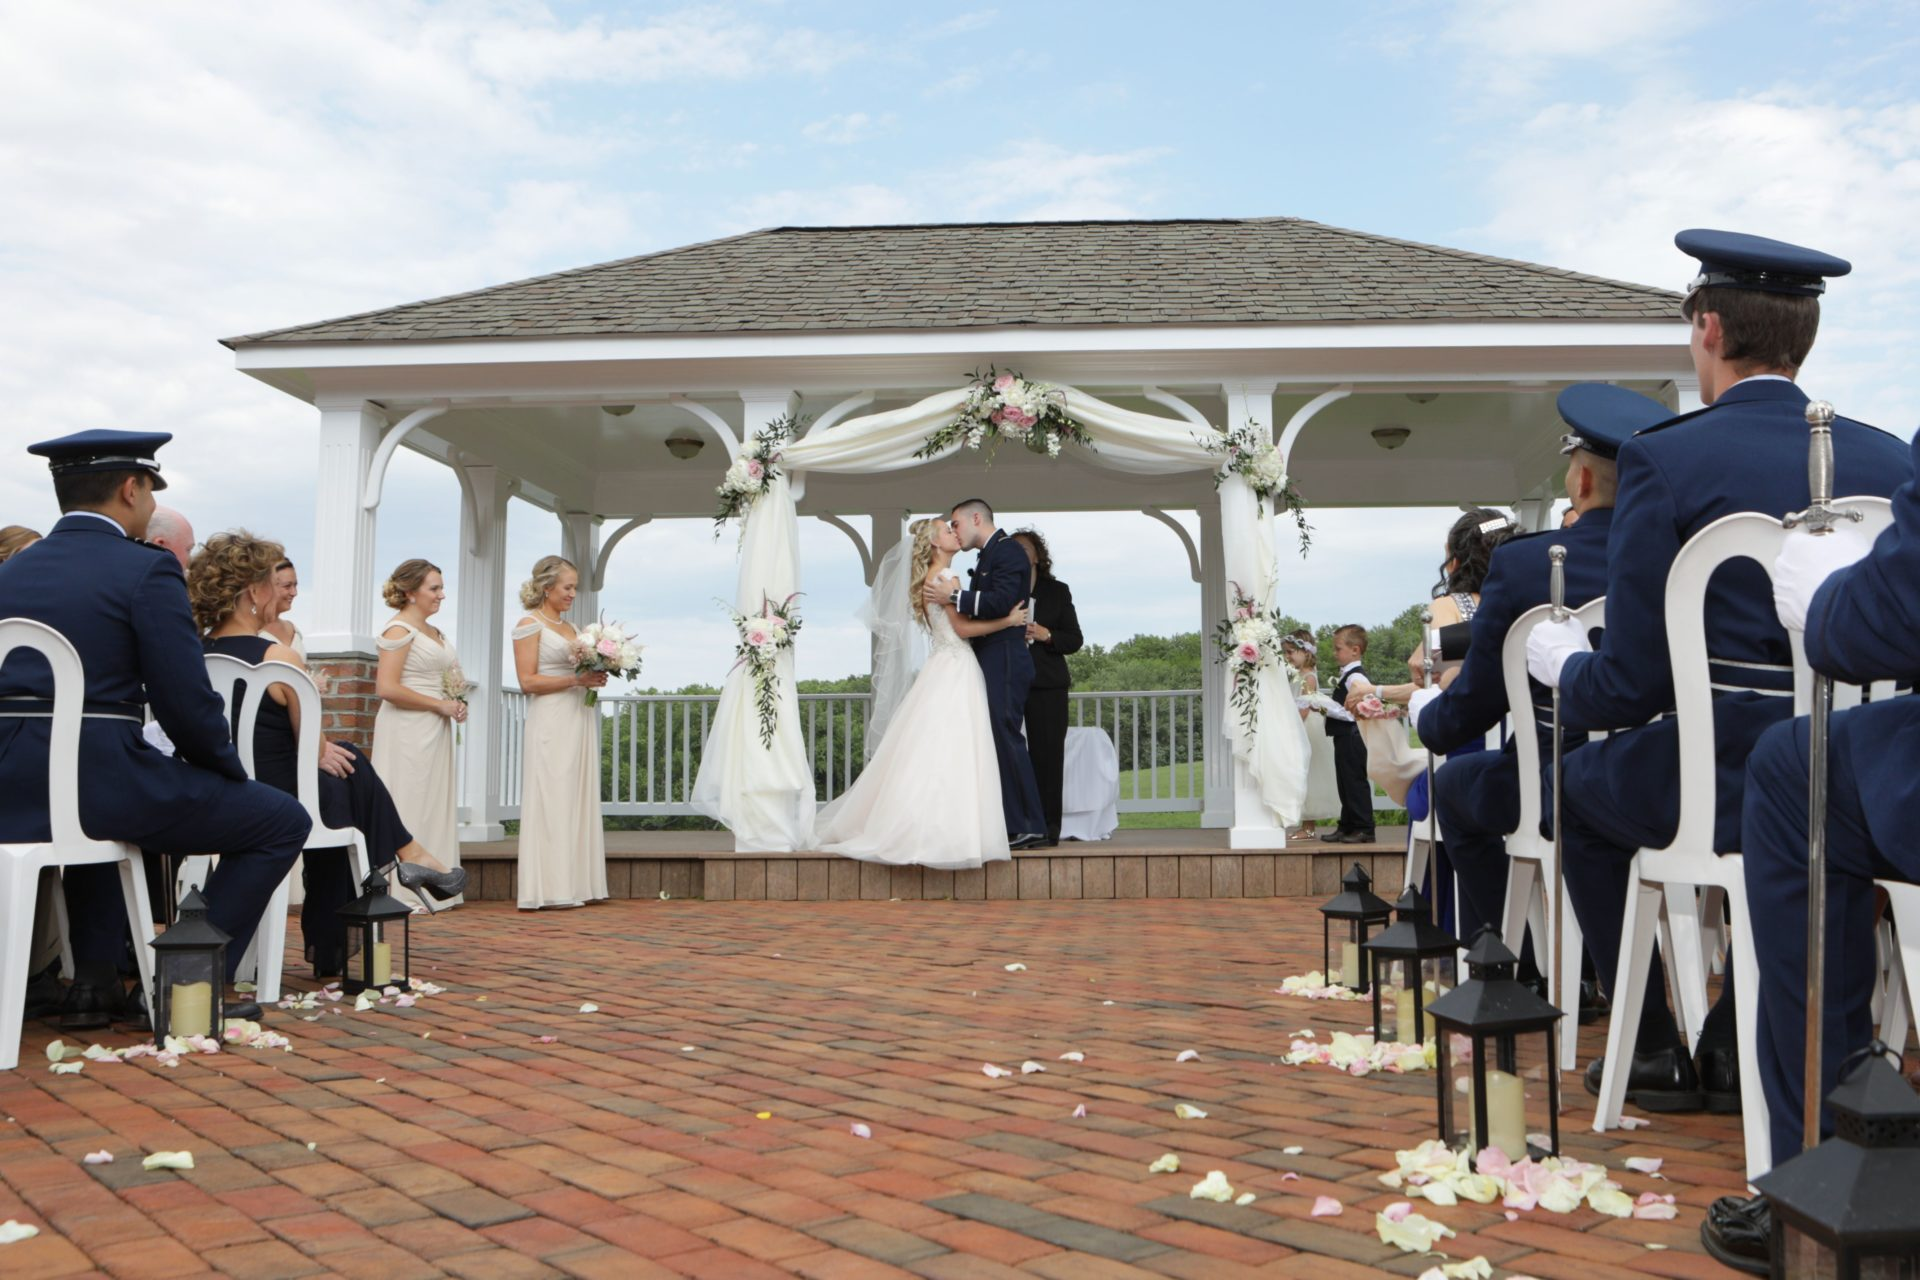 Bride and groom kiss on pavilion after outdoor wedding ceremony in Maryland